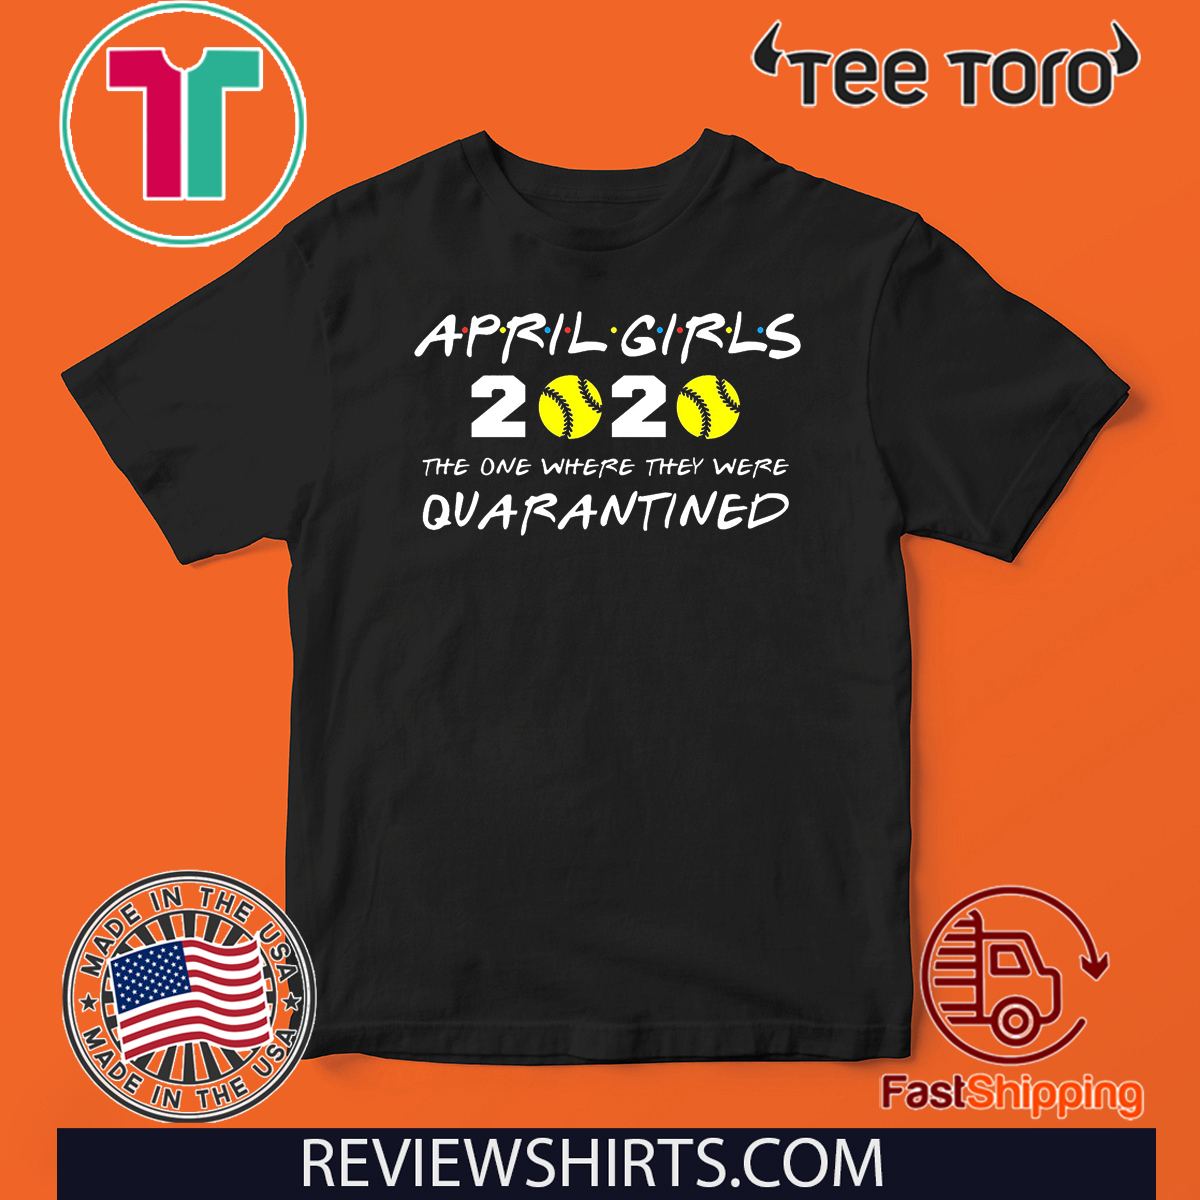 April Girls 2020 The One Where They Were Quarantined Shirt - Friends Inspired Softball Players 2020 The One Where They Were Quarantined TShirt - I Celebrate My Birthday In Quarantine Shirt T-Shirt